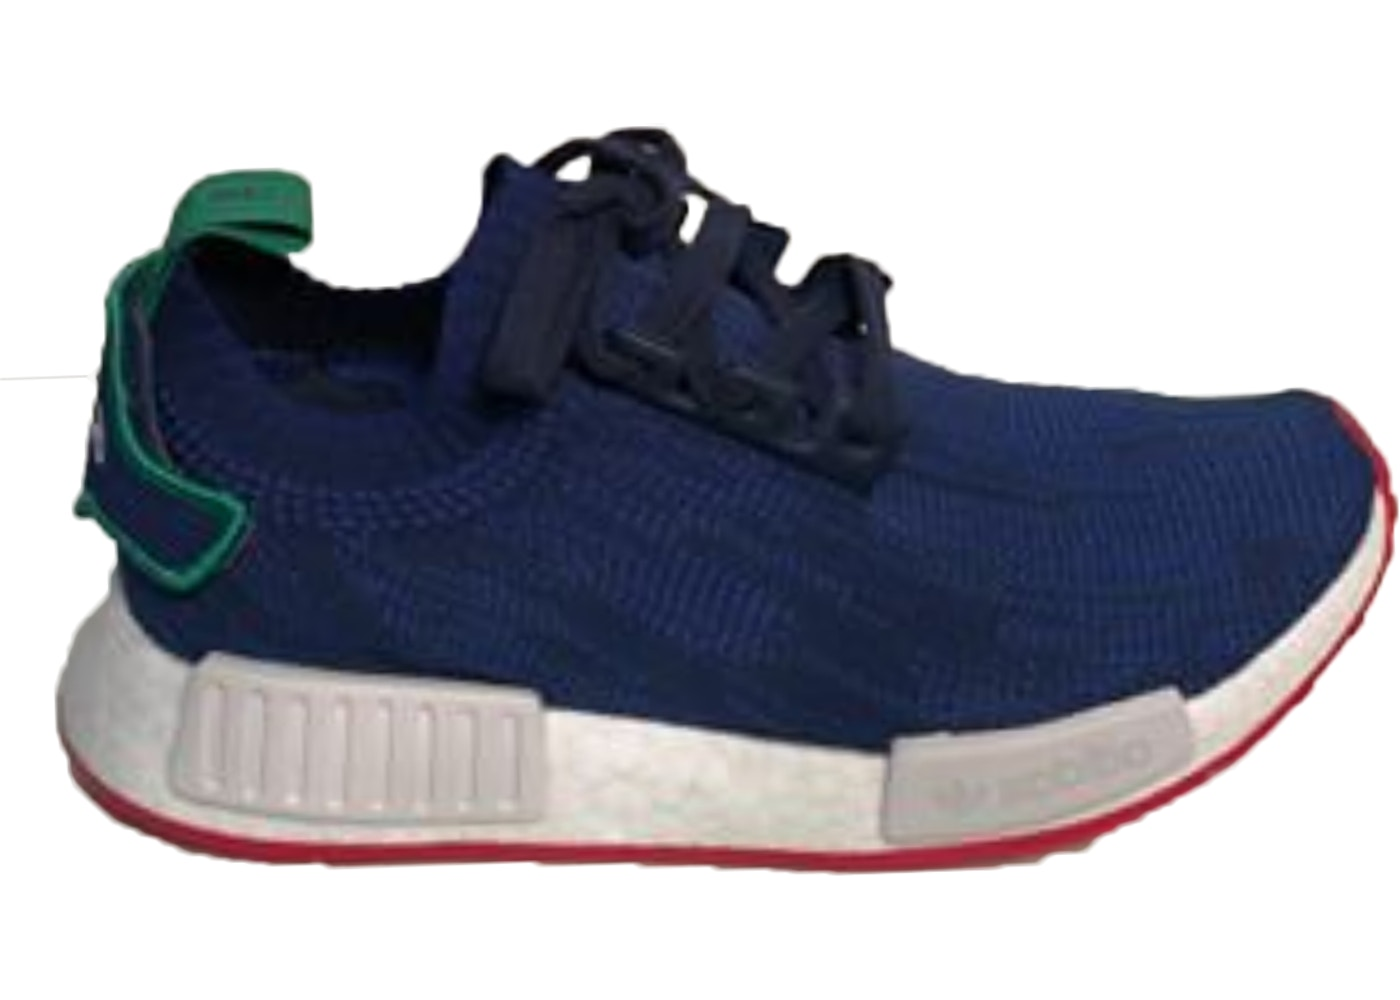 online store 9b575 e65cb adidas NMD Size 15 Shoes - Average Sale Price